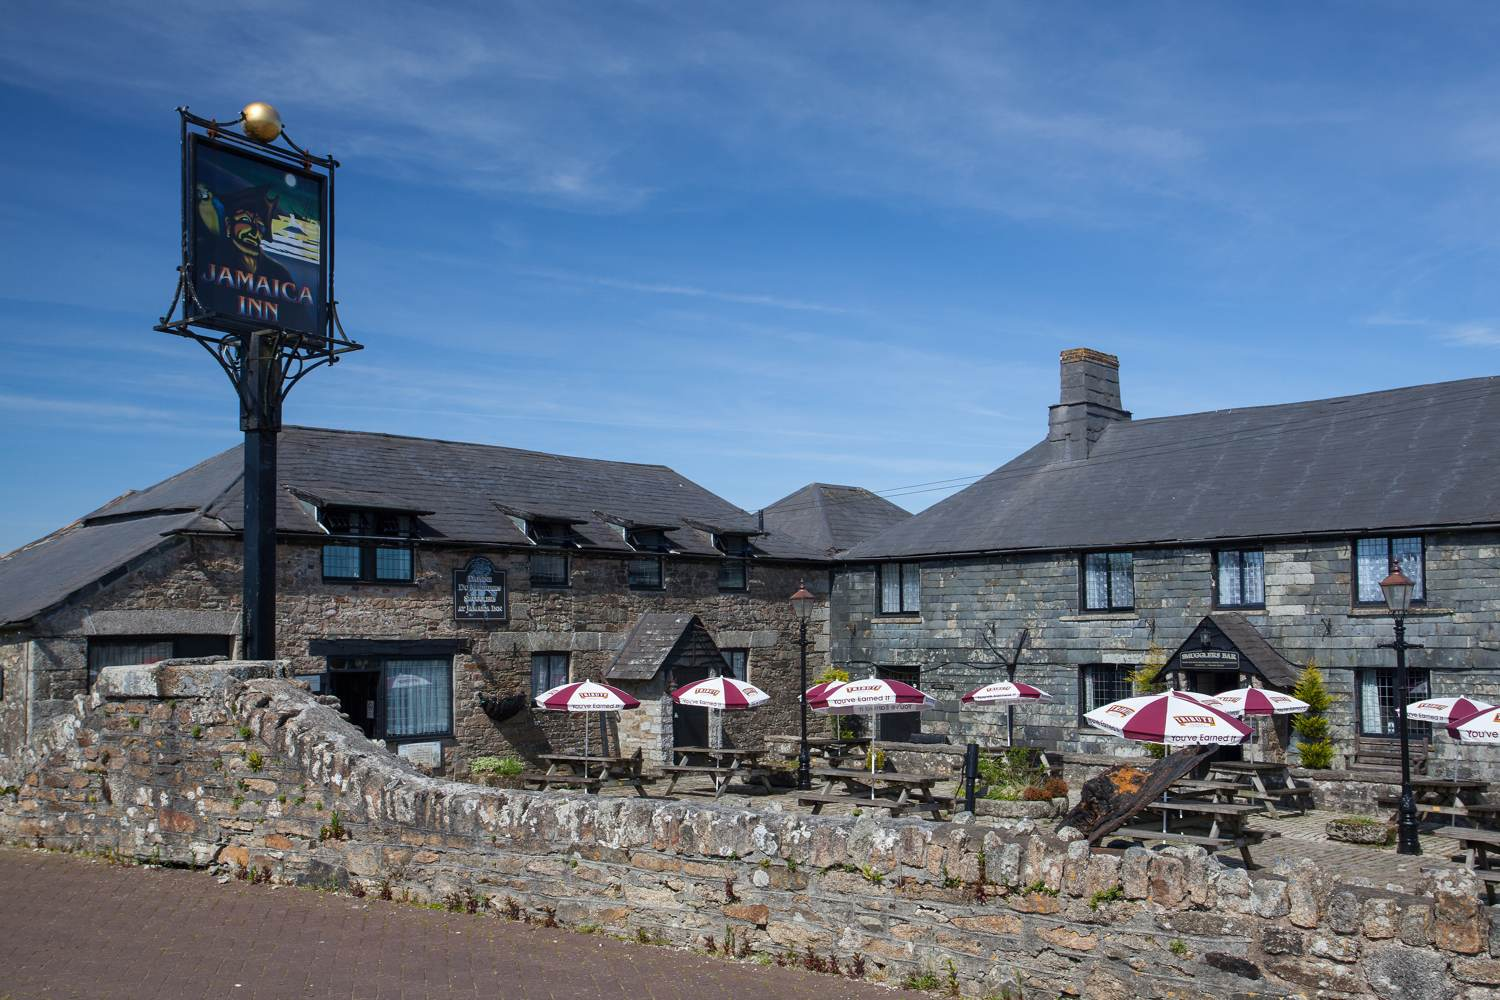 Jamaica Inn in Cornwall, England